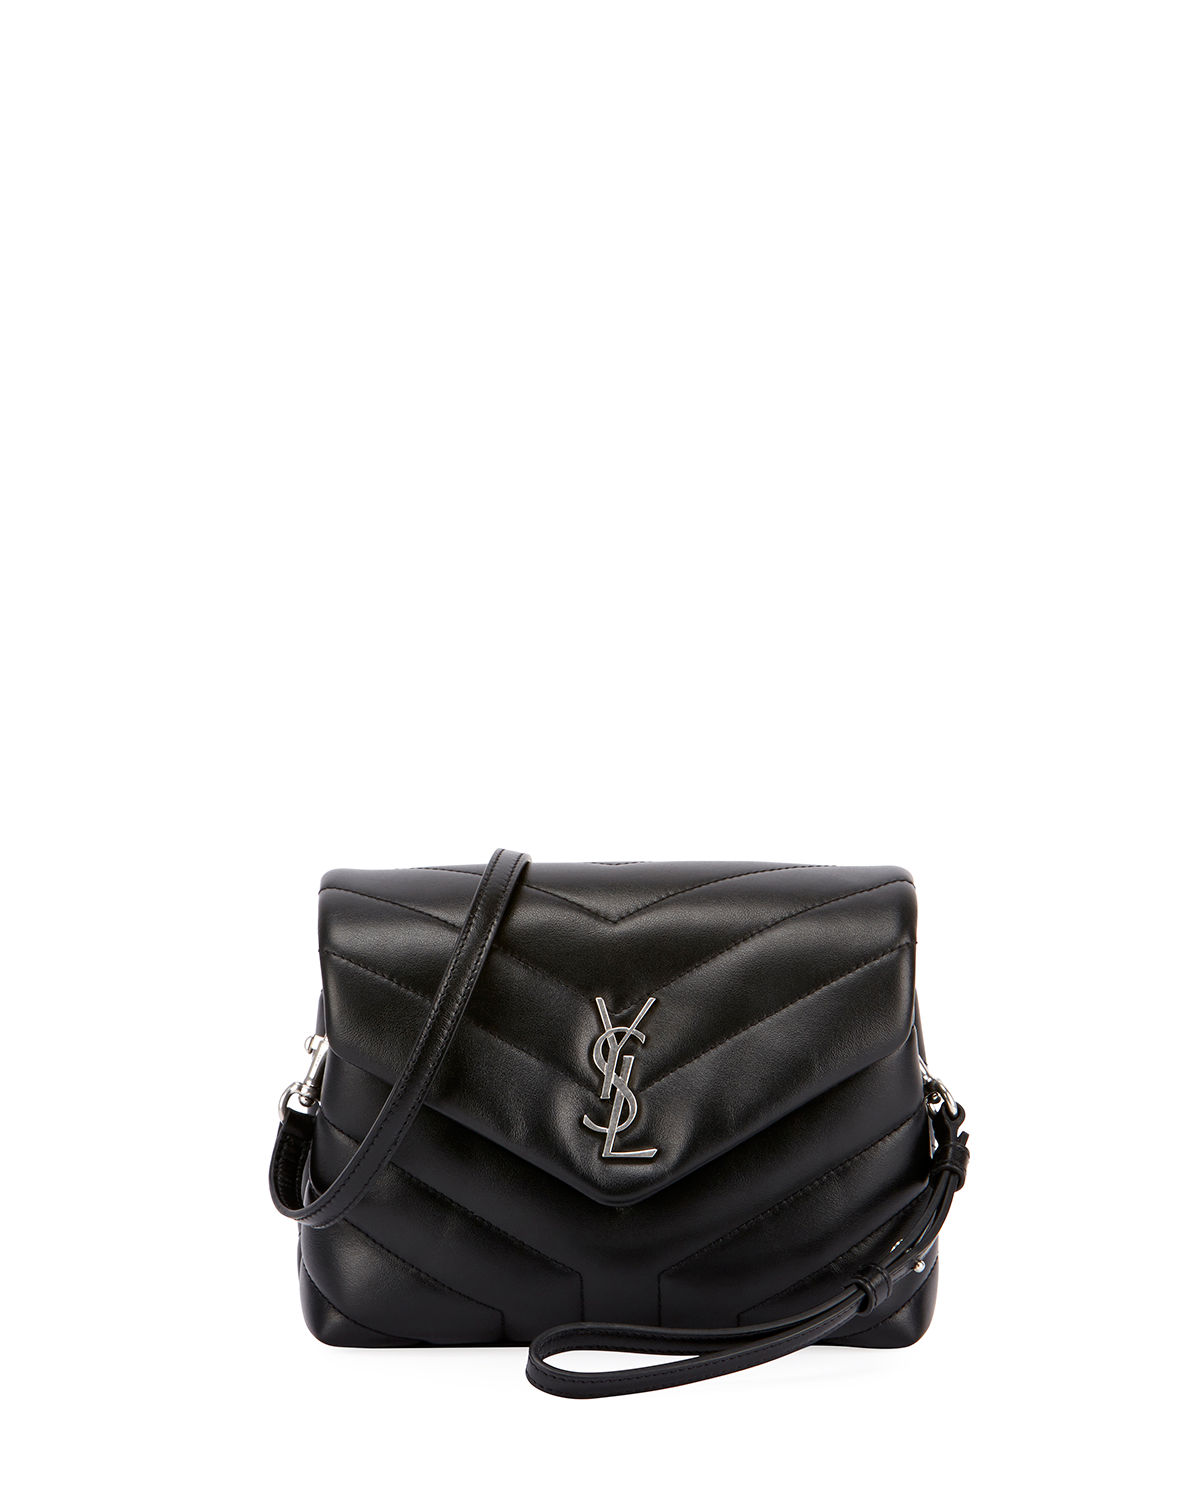 bf79c46394c Saint Laurent Loulou Monogram YSL Mini V-Flap Calf Leather Crossbody Bag -  Nickel Oxide